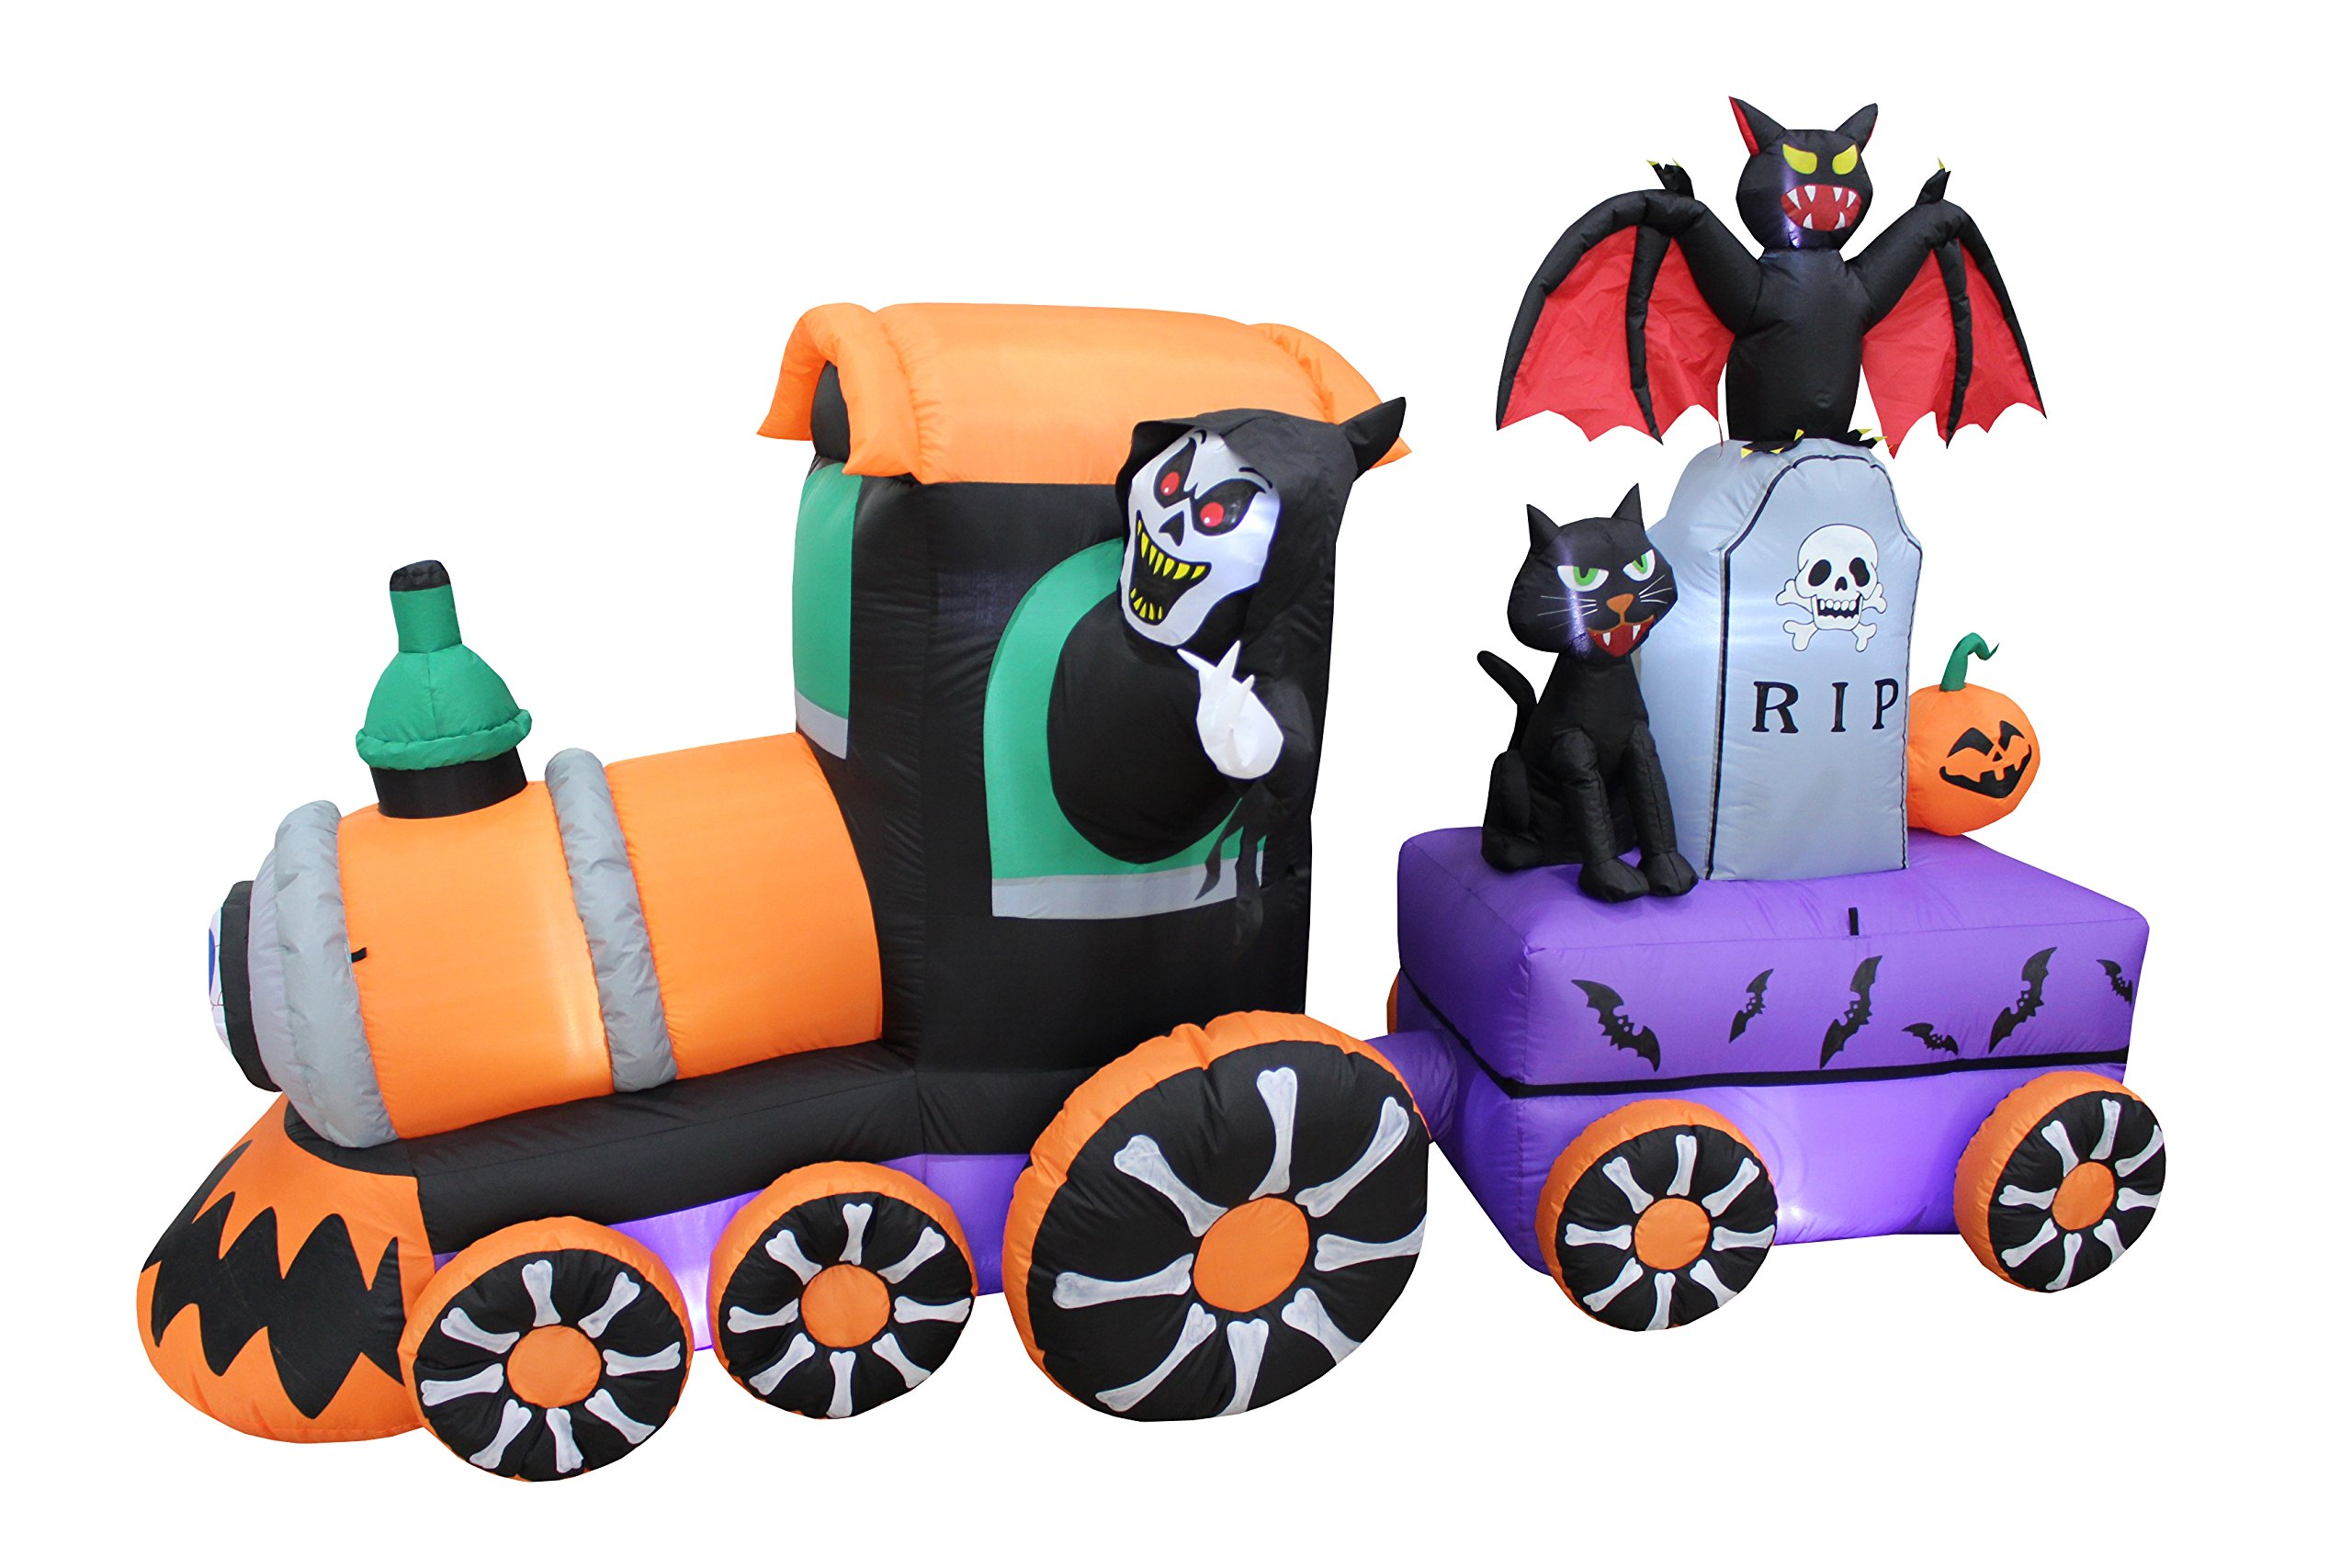 7 Foot Long Lighted Halloween Inflatable Grim Reaper Ride Train with Tombstone Cat Bat Pumpkin Indoor Outdoor Yard Art Decoration